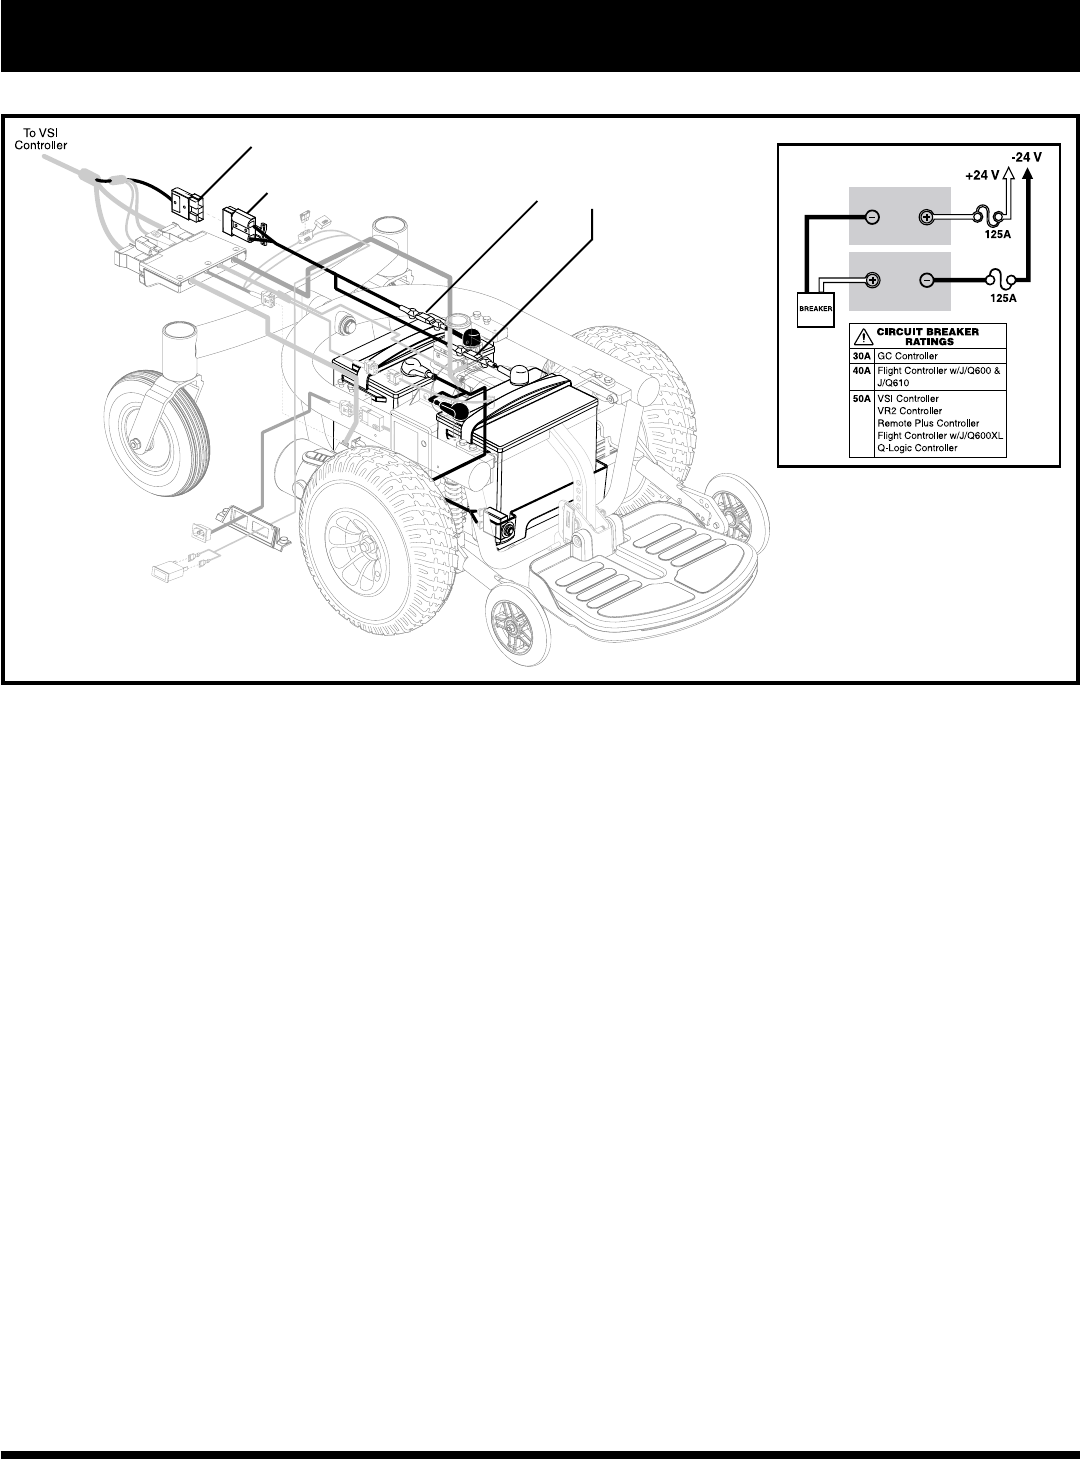 55cd0a64 9f56 4b5b bb6f 66cc883674a7 bg2c page 44 of pride mobility mobility aid 1103 ultra user guide pride jet 3 ultra wiring diagram at edmiracle.co